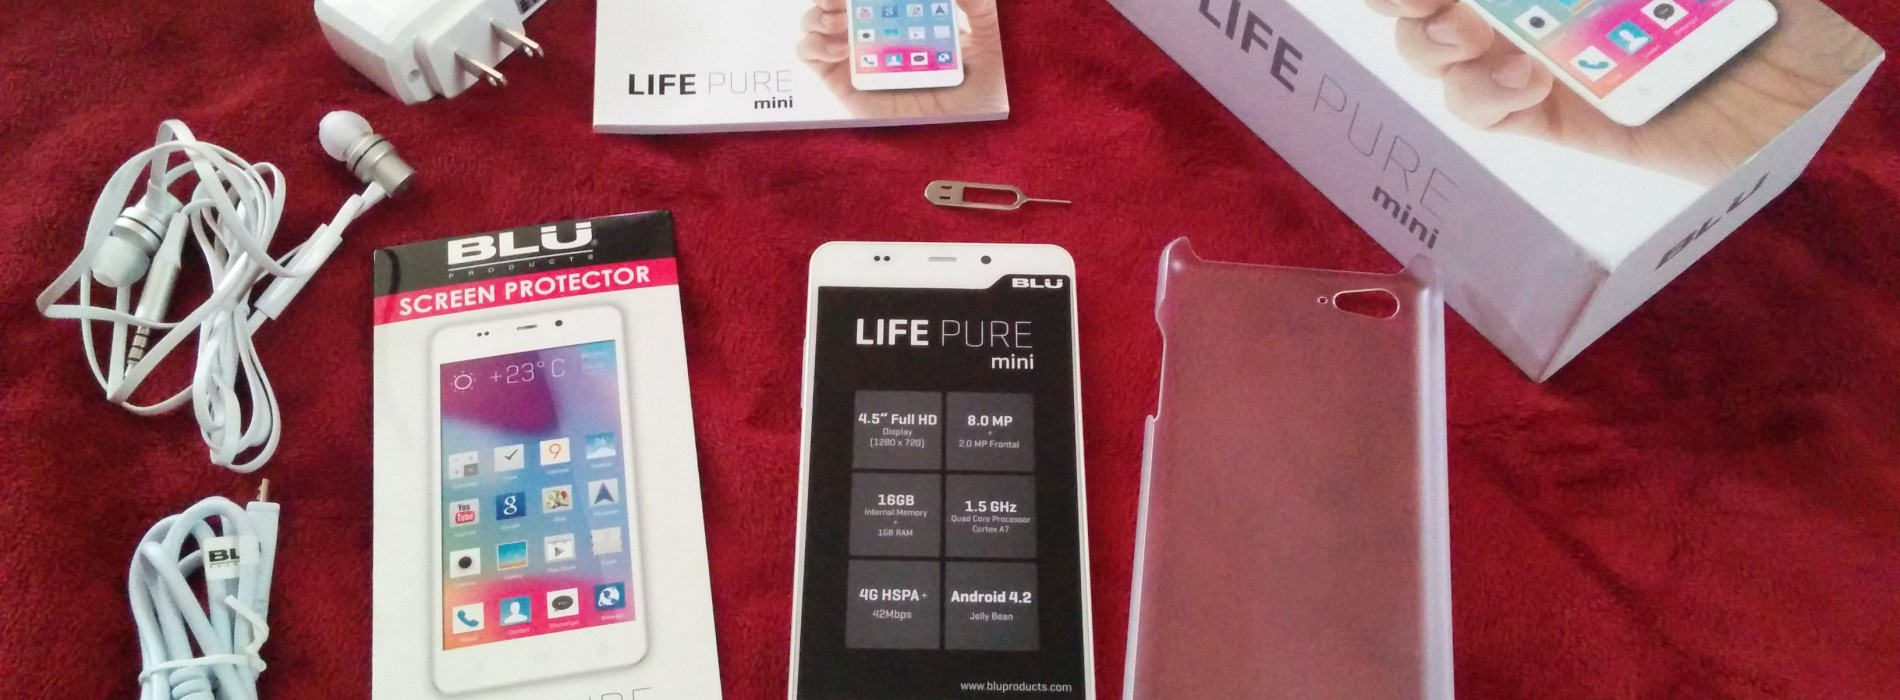 Blu Life Pure mini first impressions and review